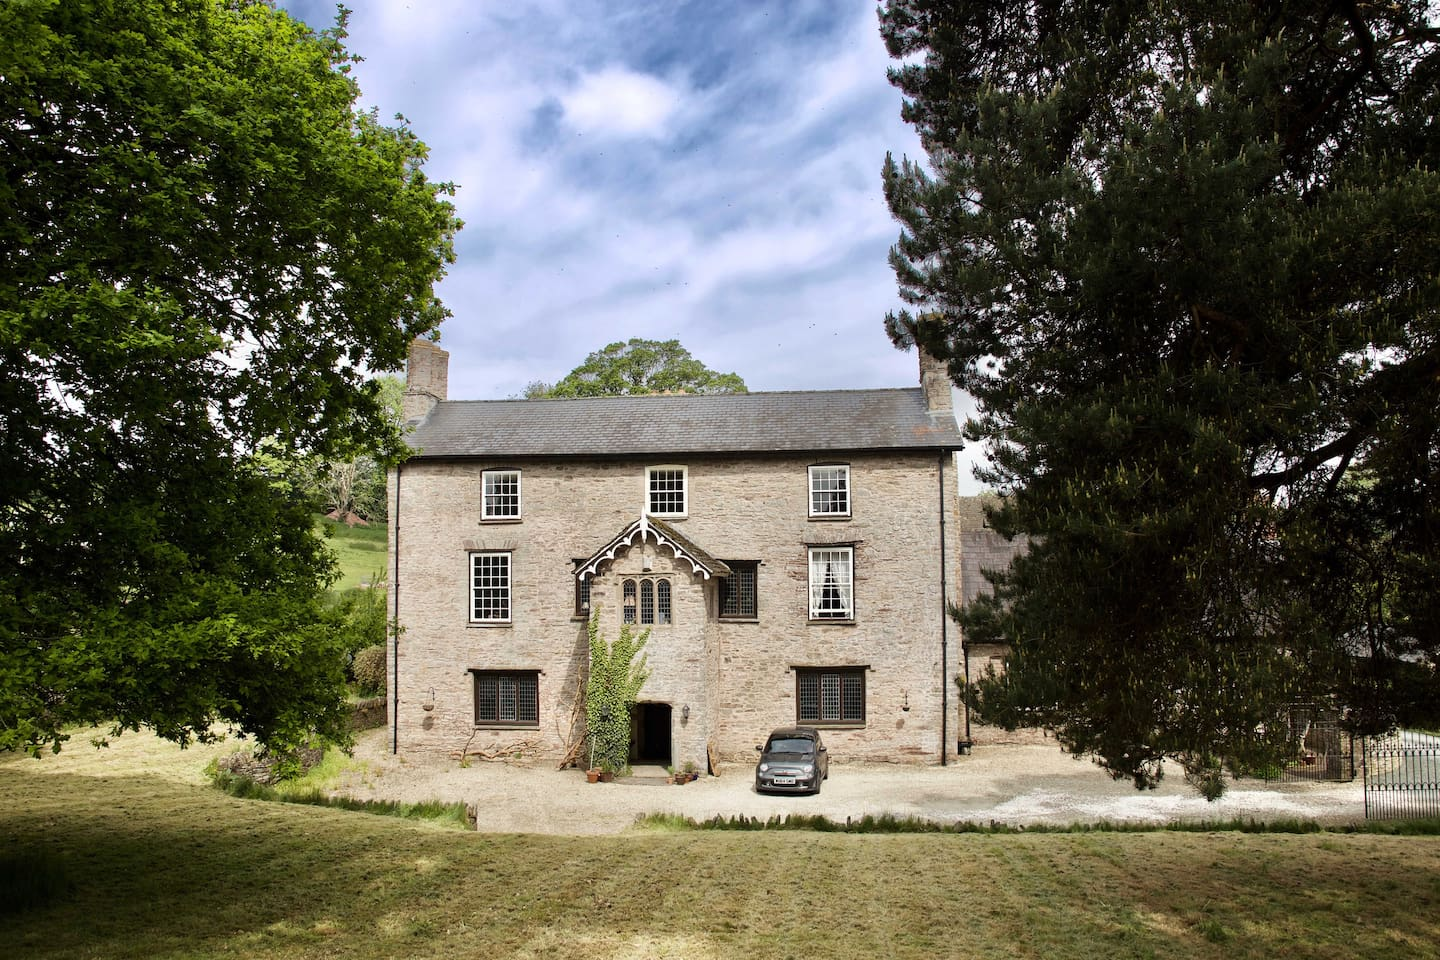 Trebarried Hall is a fine 17th-century building with links to Shakespeare